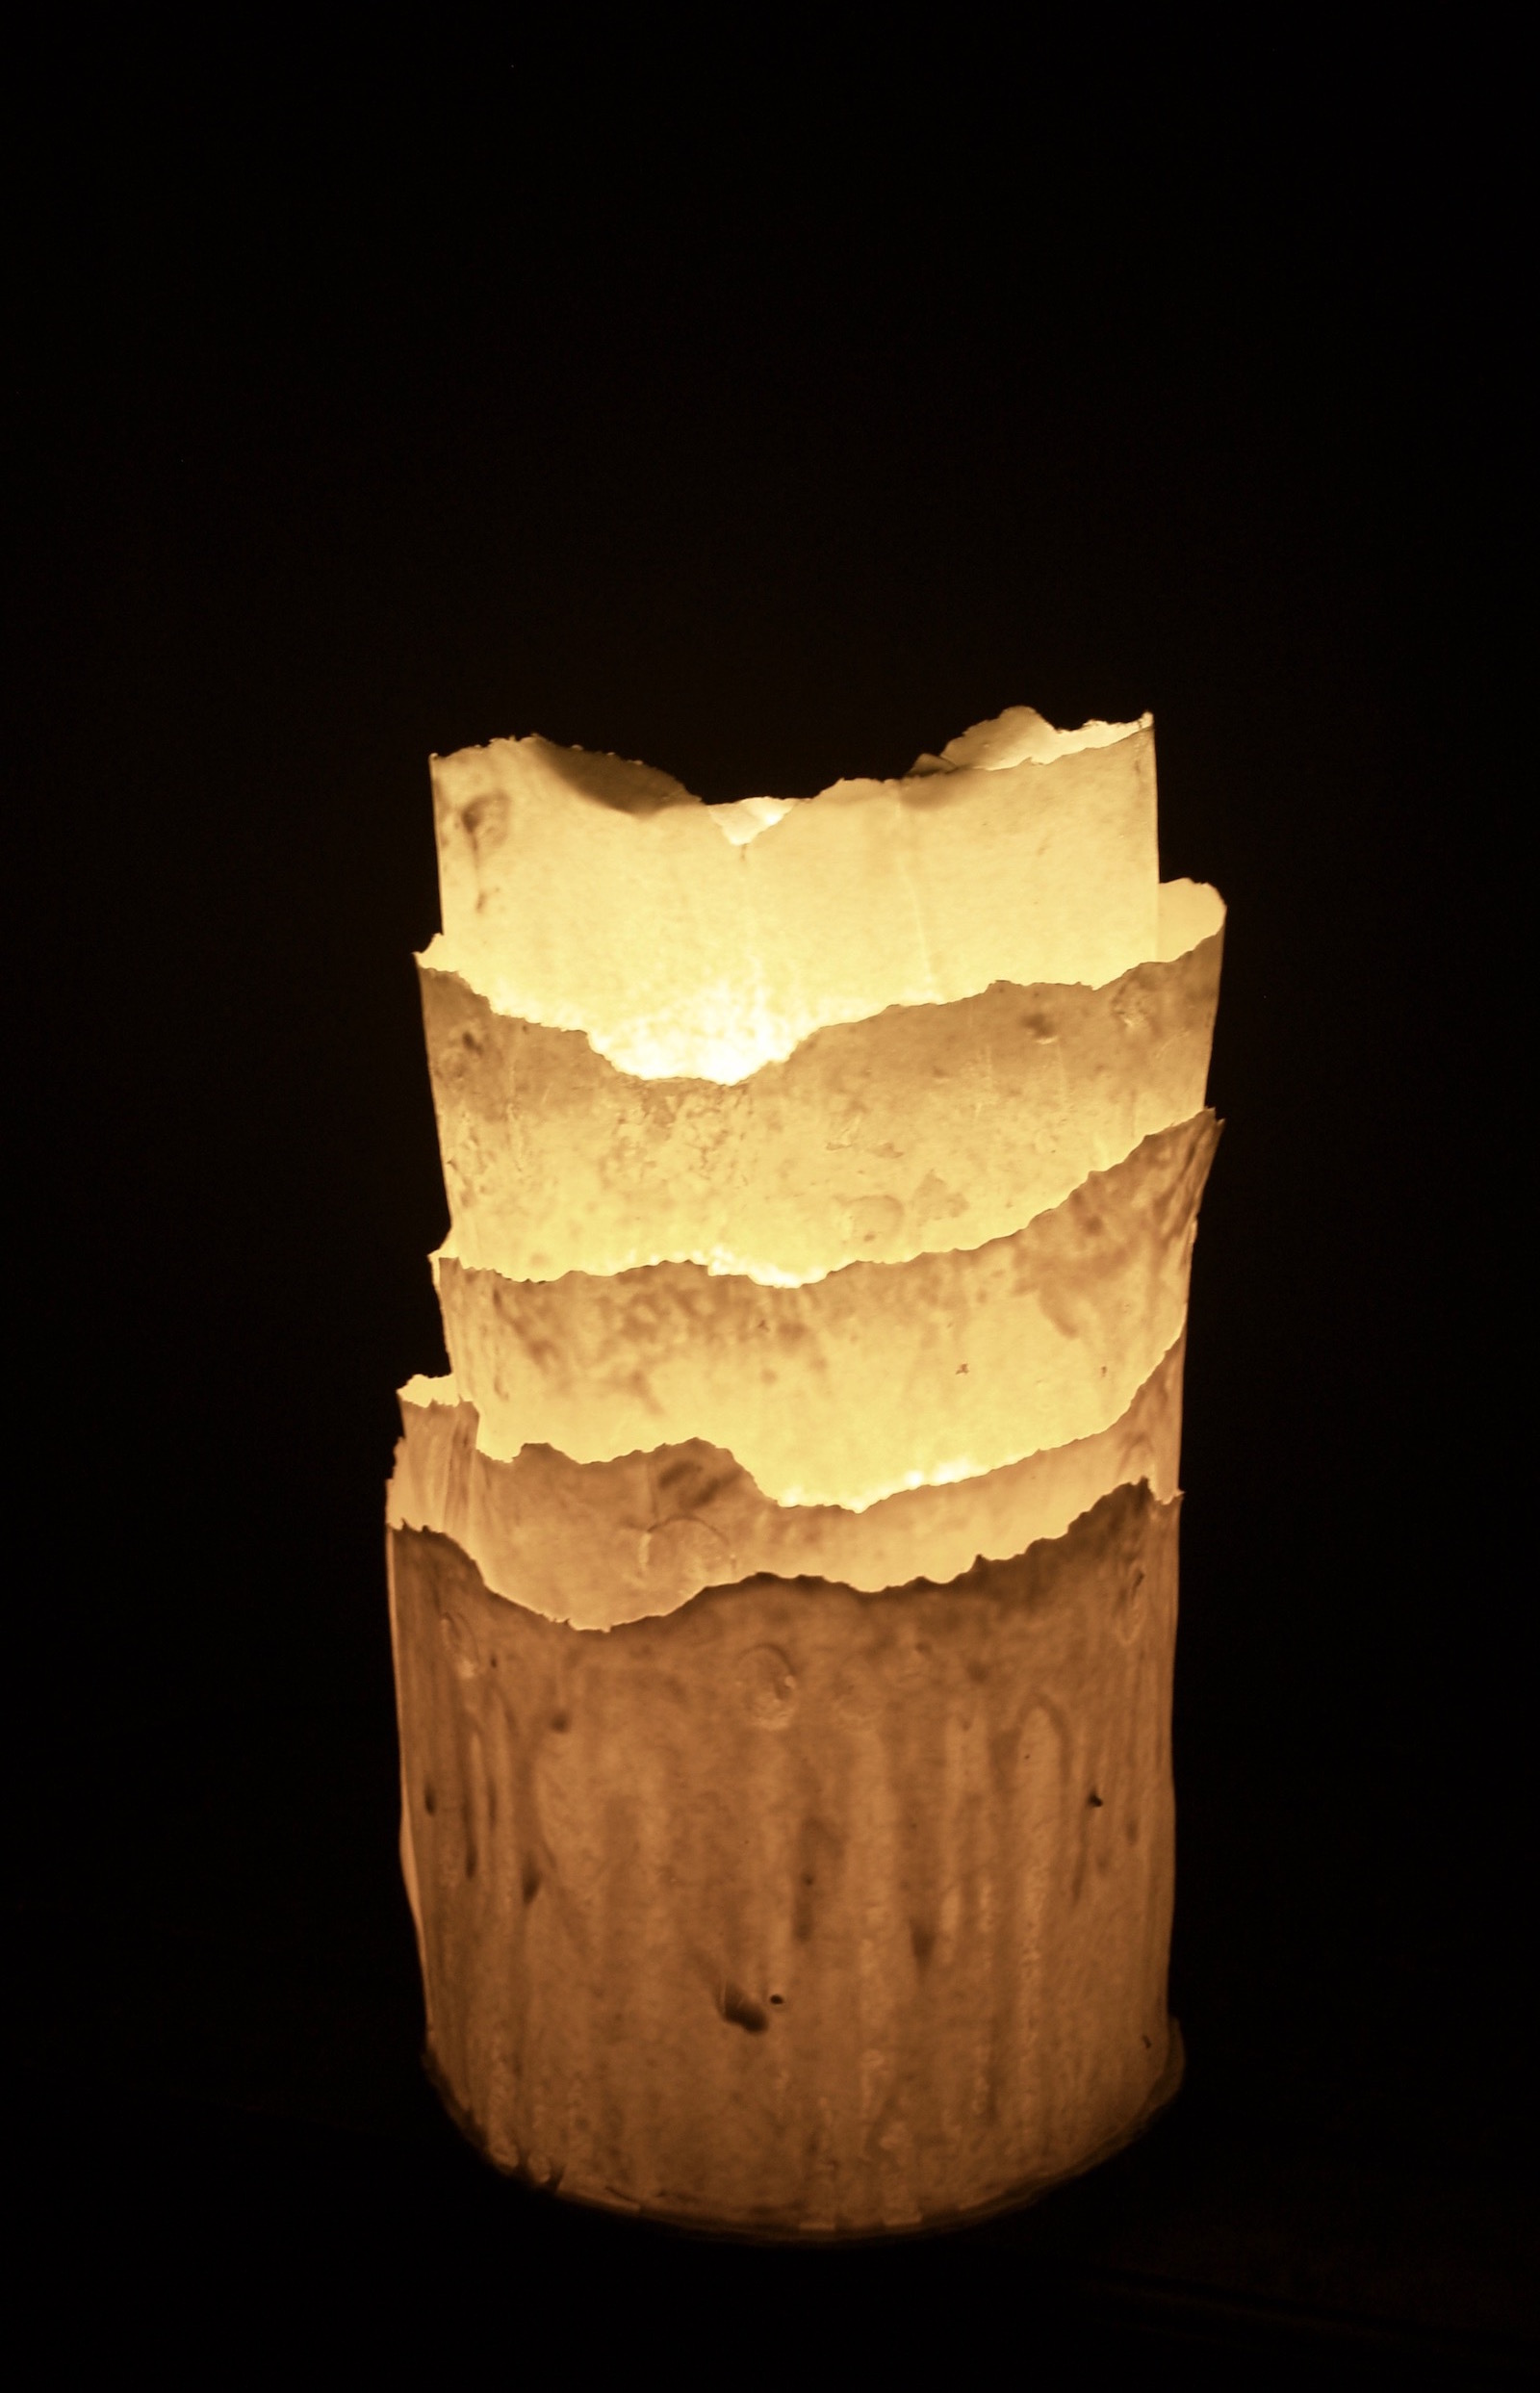 Cylinder shaped table lamp with layers of translucent porcelain